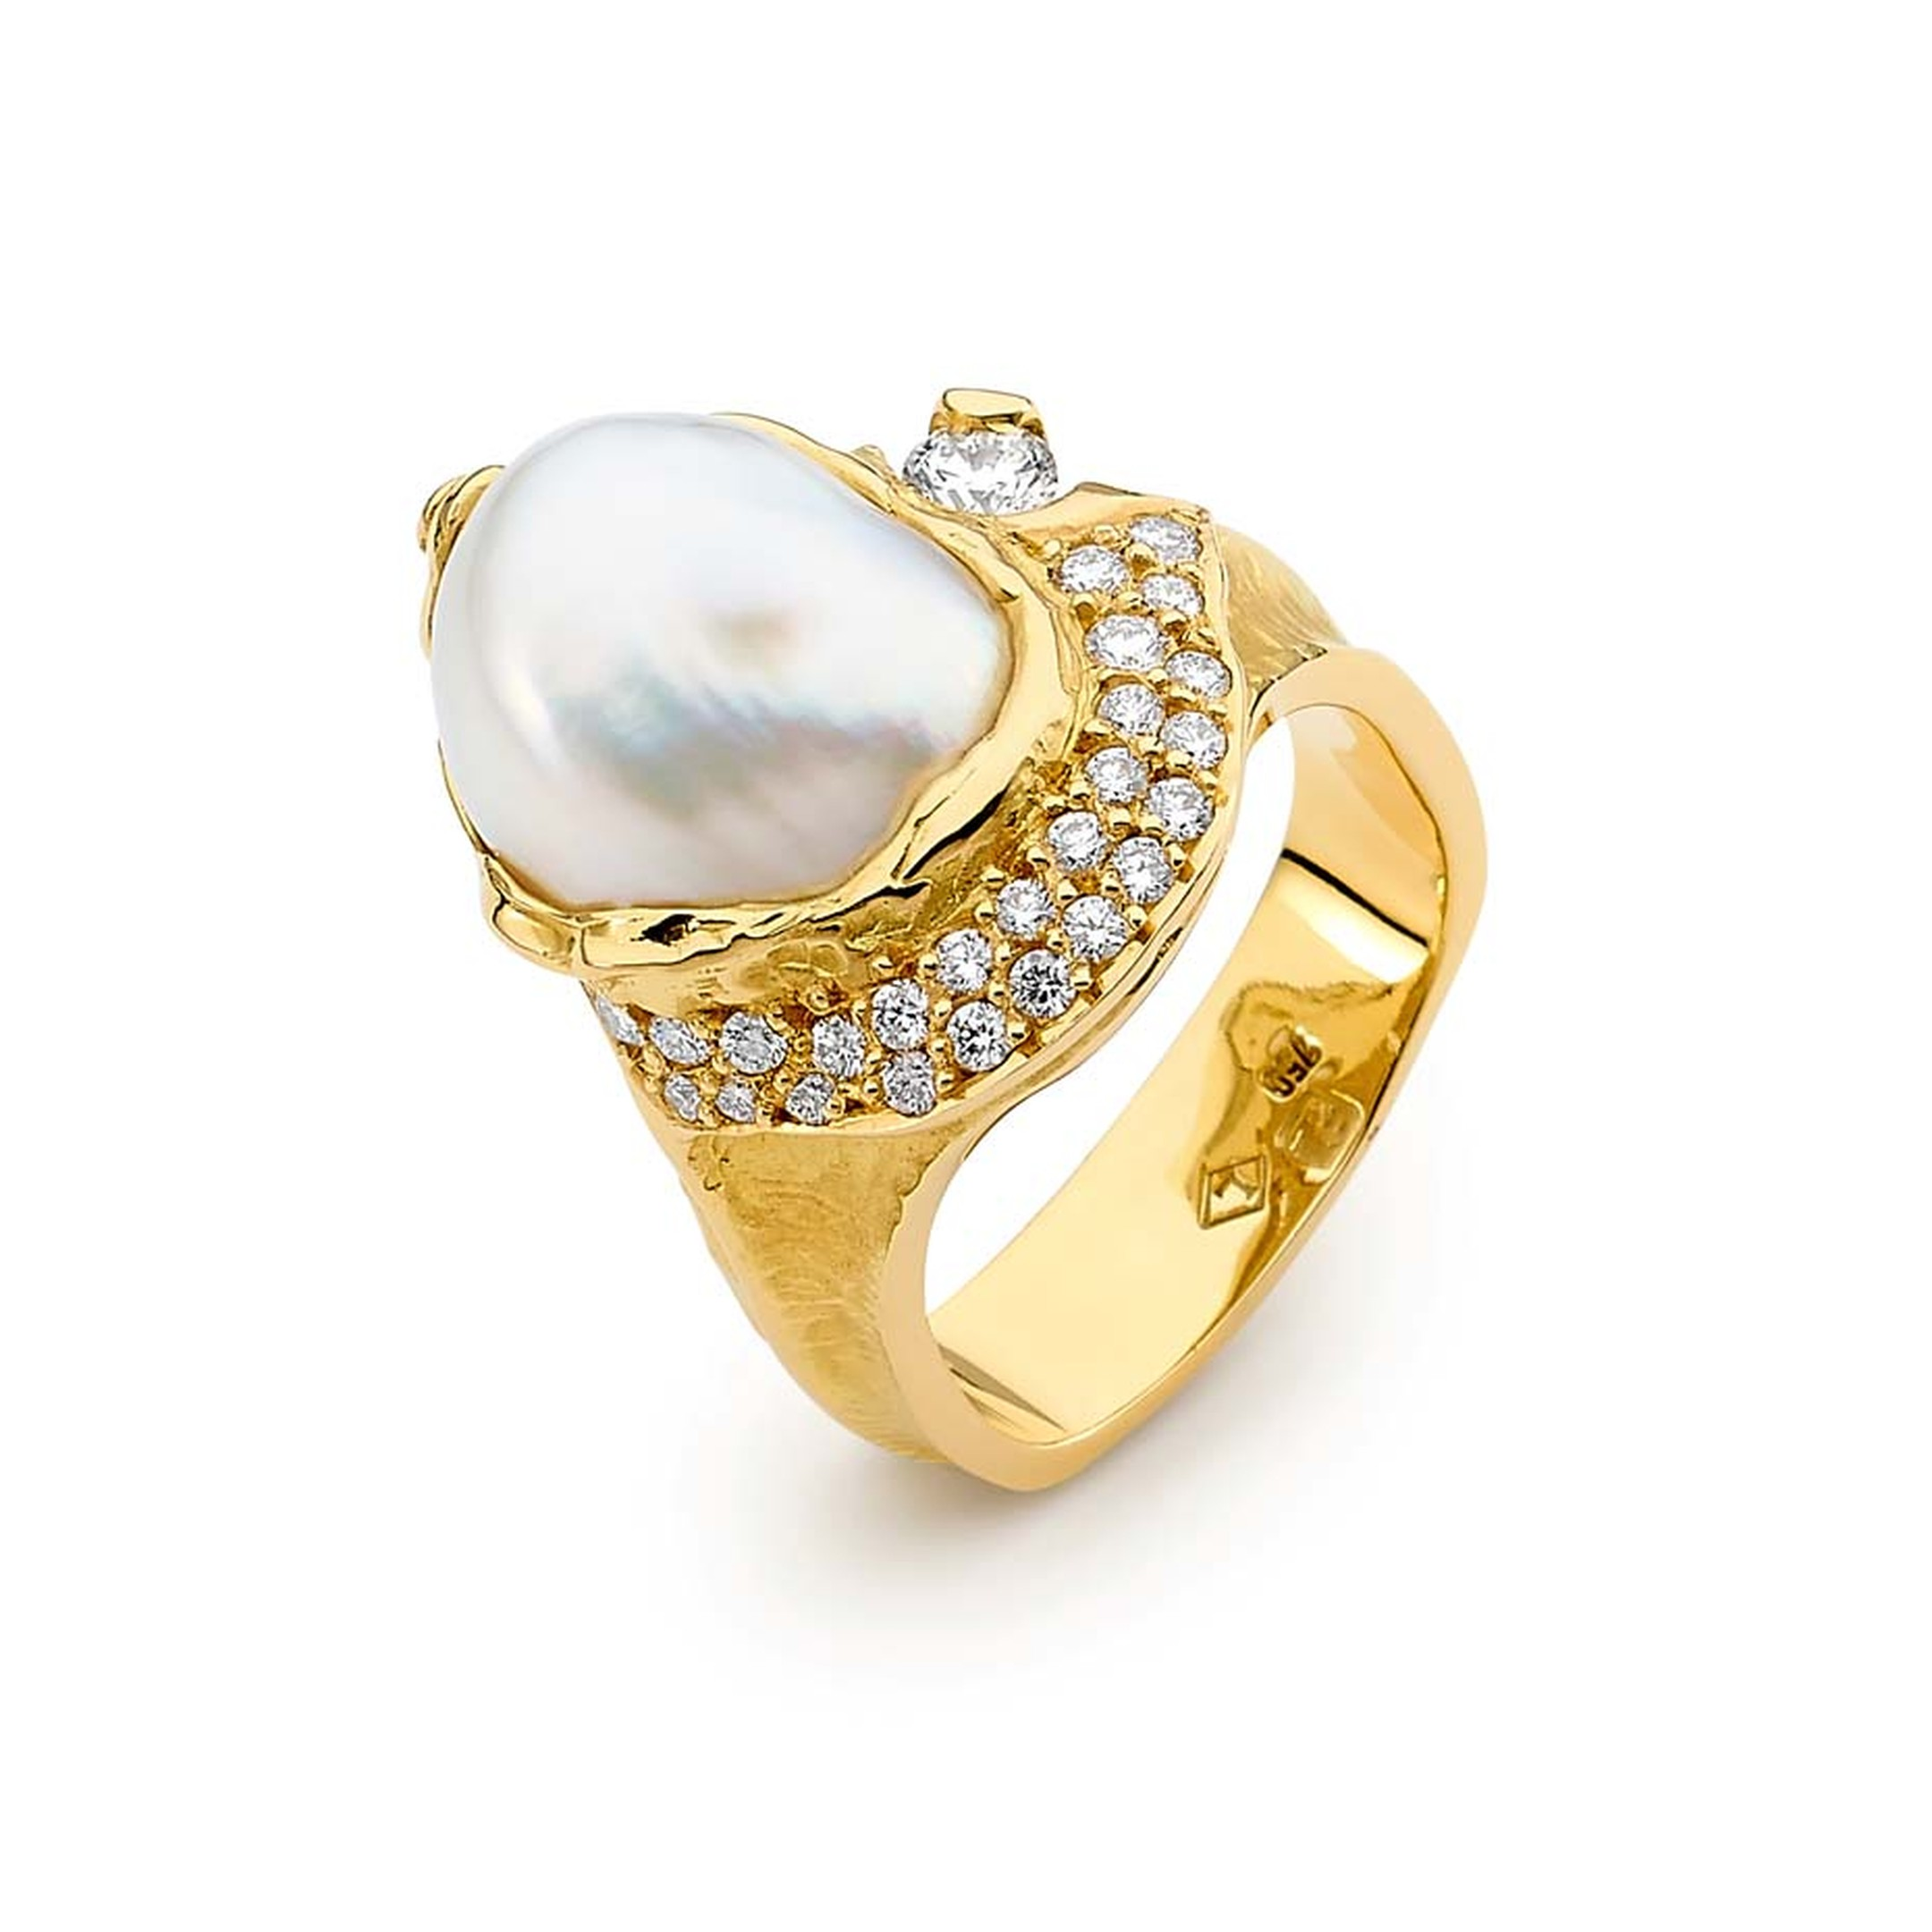 Australian Pearls_Linneys_18ct yellow gold Australian South Sea seedless pearl and diamond ring $7900.jpg